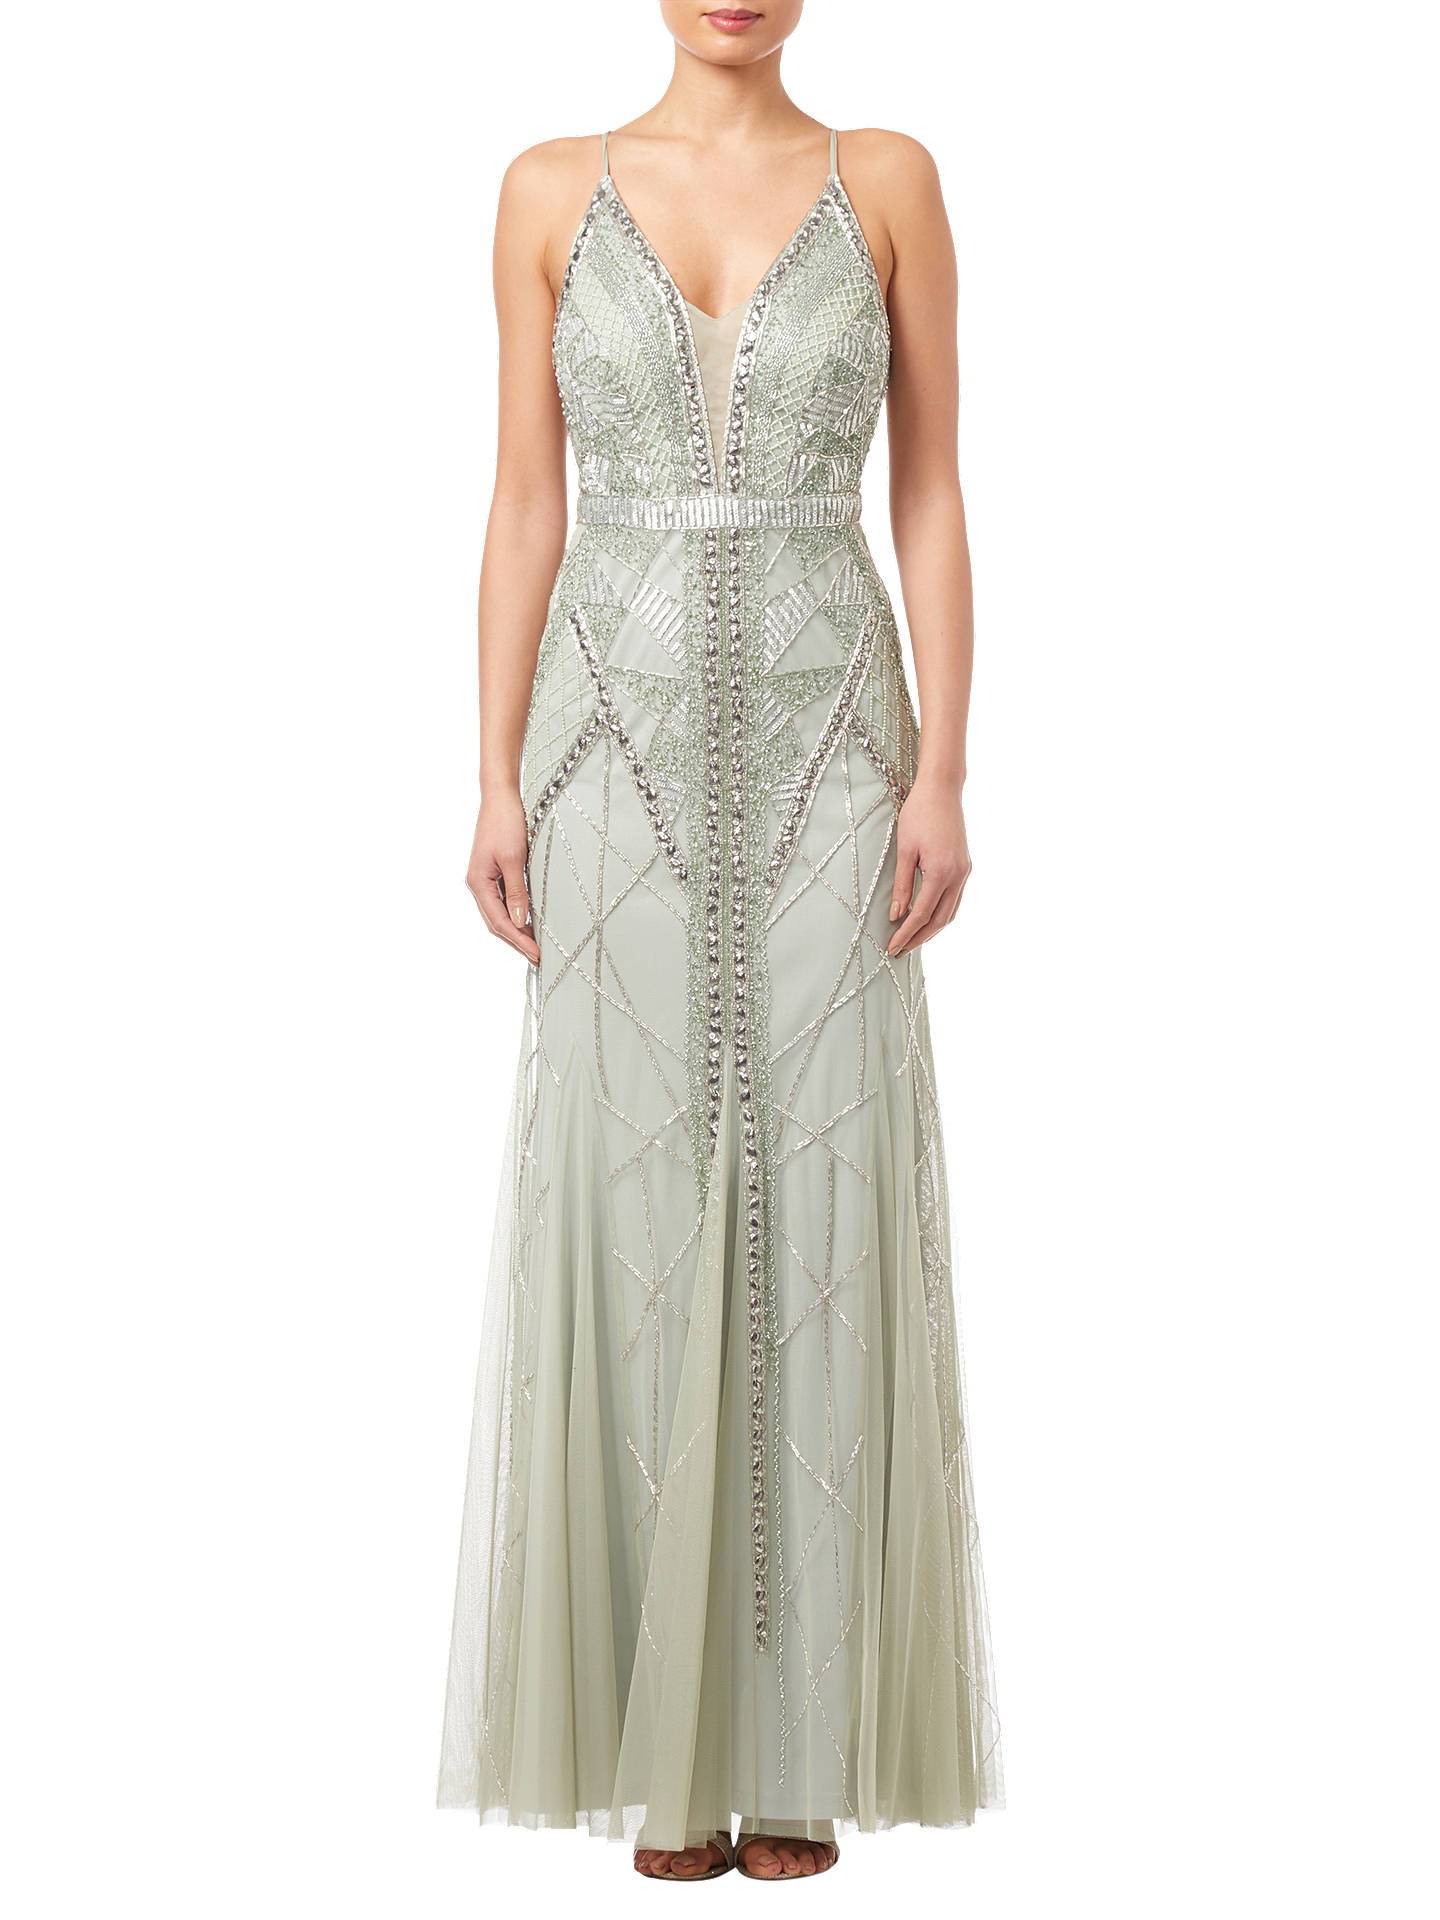 Buy Adrianna Papell Beaded Long Dress, Mint, 6 Online at johnlewis.com